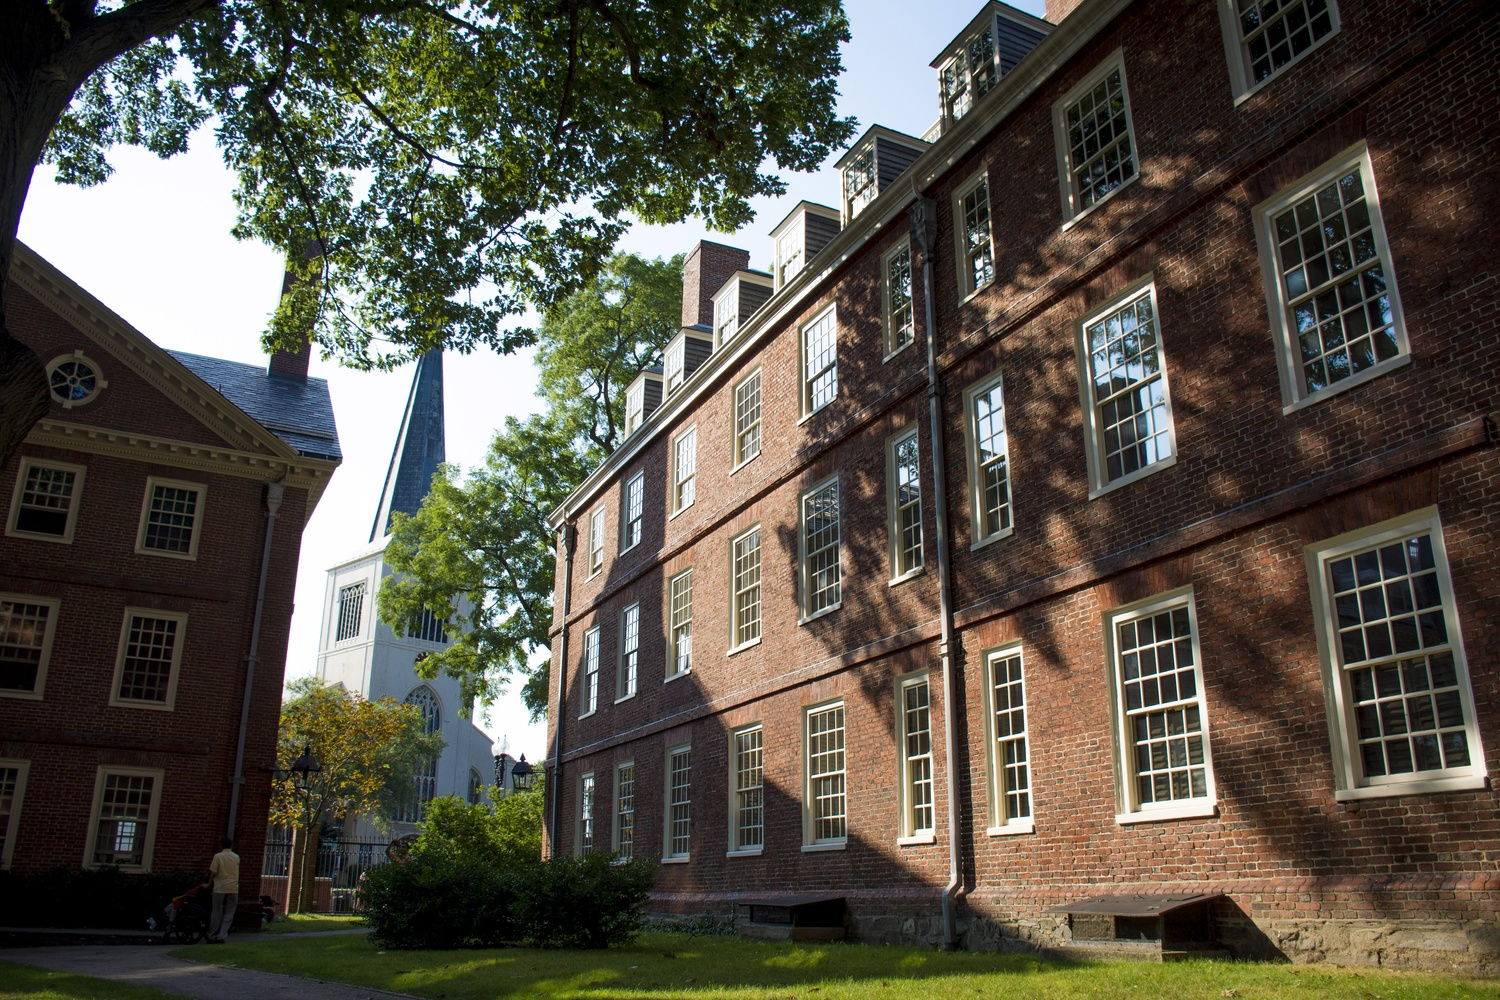 As Harvard transitions to remote instruction due to the coronavirus crisis, graduate students across the University's 12 schools have advocated for tuition reimbursements to compensate for the in-person components of their education they can no longer access.